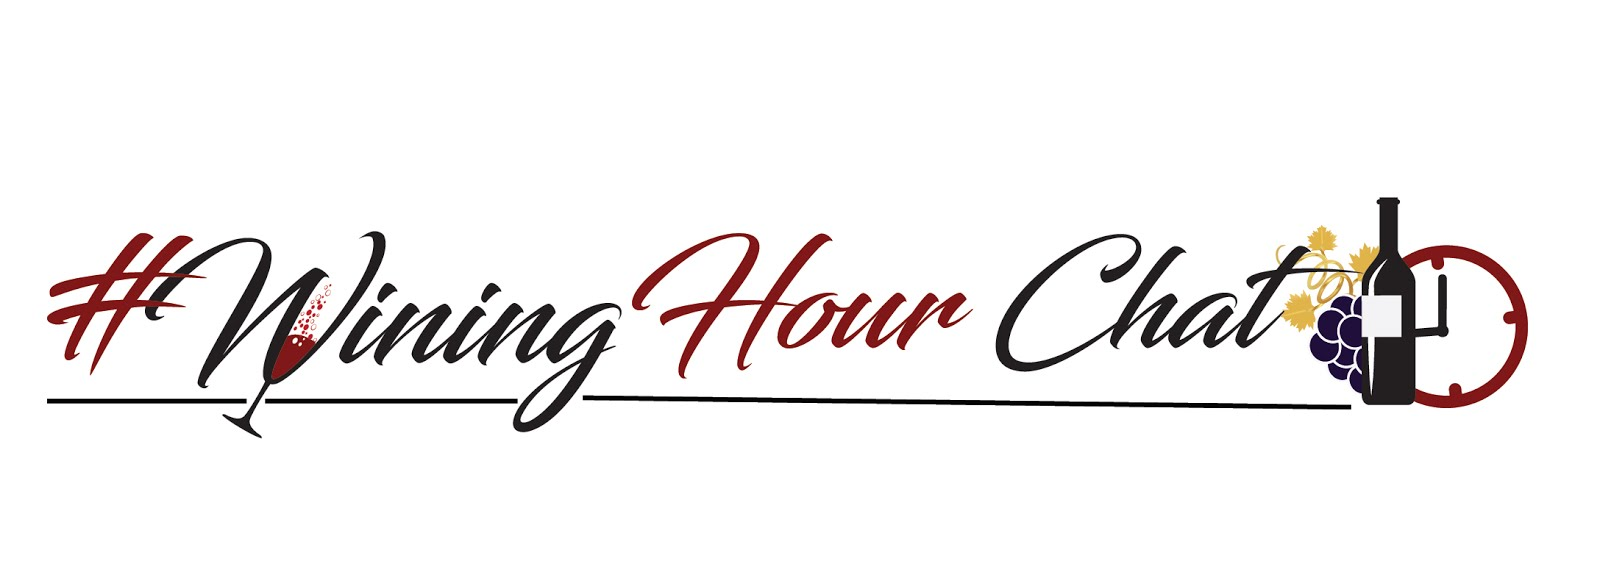 #WiningHourChat Tuesdays 6p/PST on Twitter